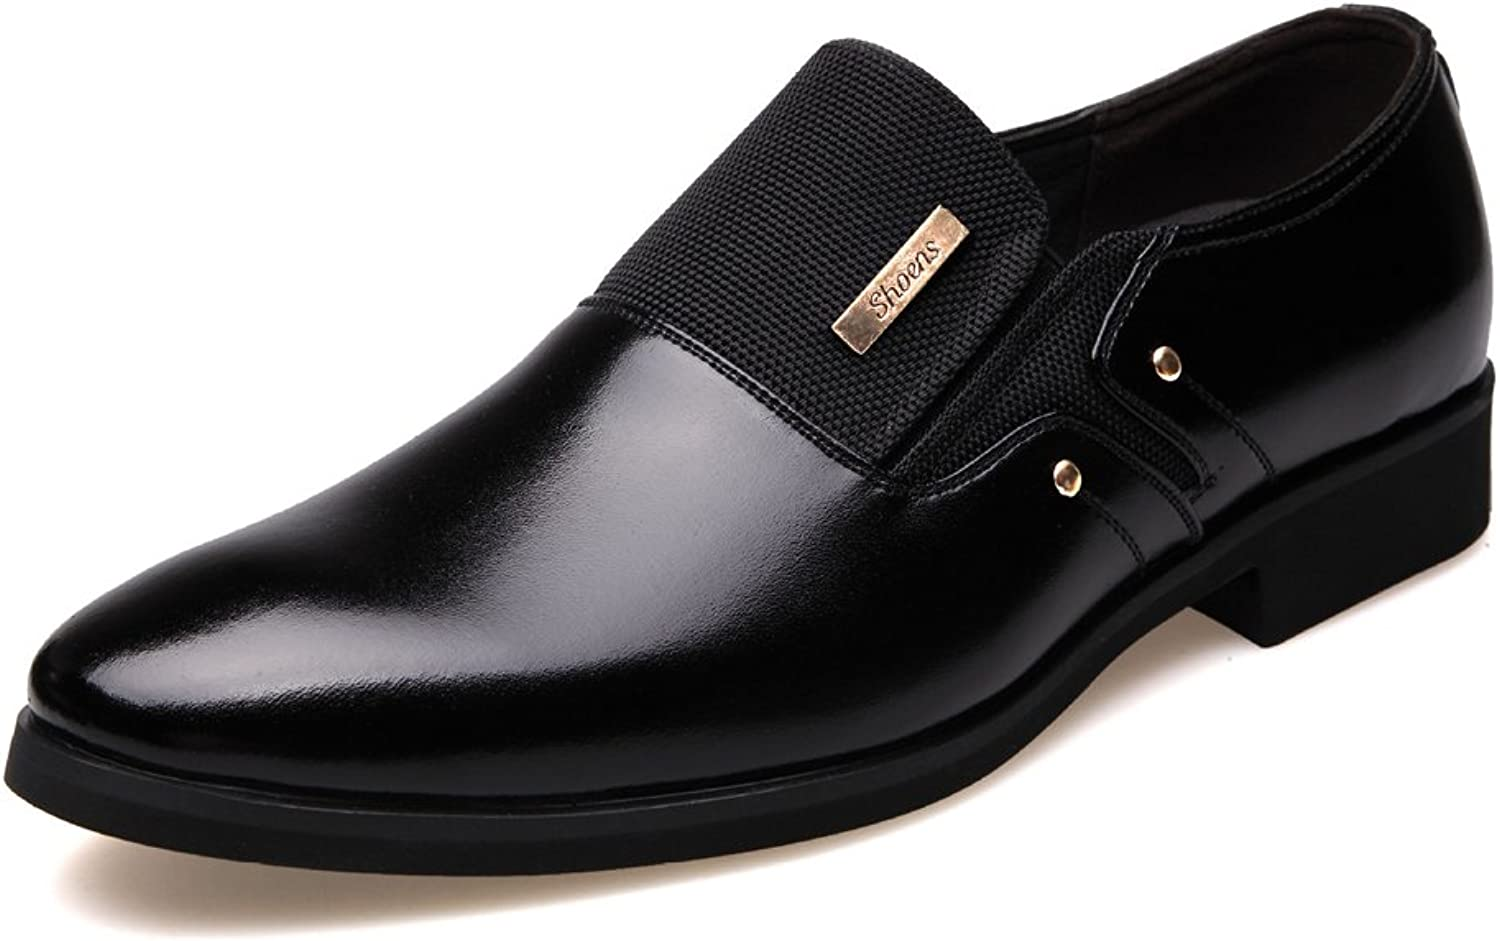 XIANGBAO-Personality Fashion Men's Business shoes Matte PU Leather & Canvas Splice Slip-on Breathable Lined Oxfords(Lace-up Optional)